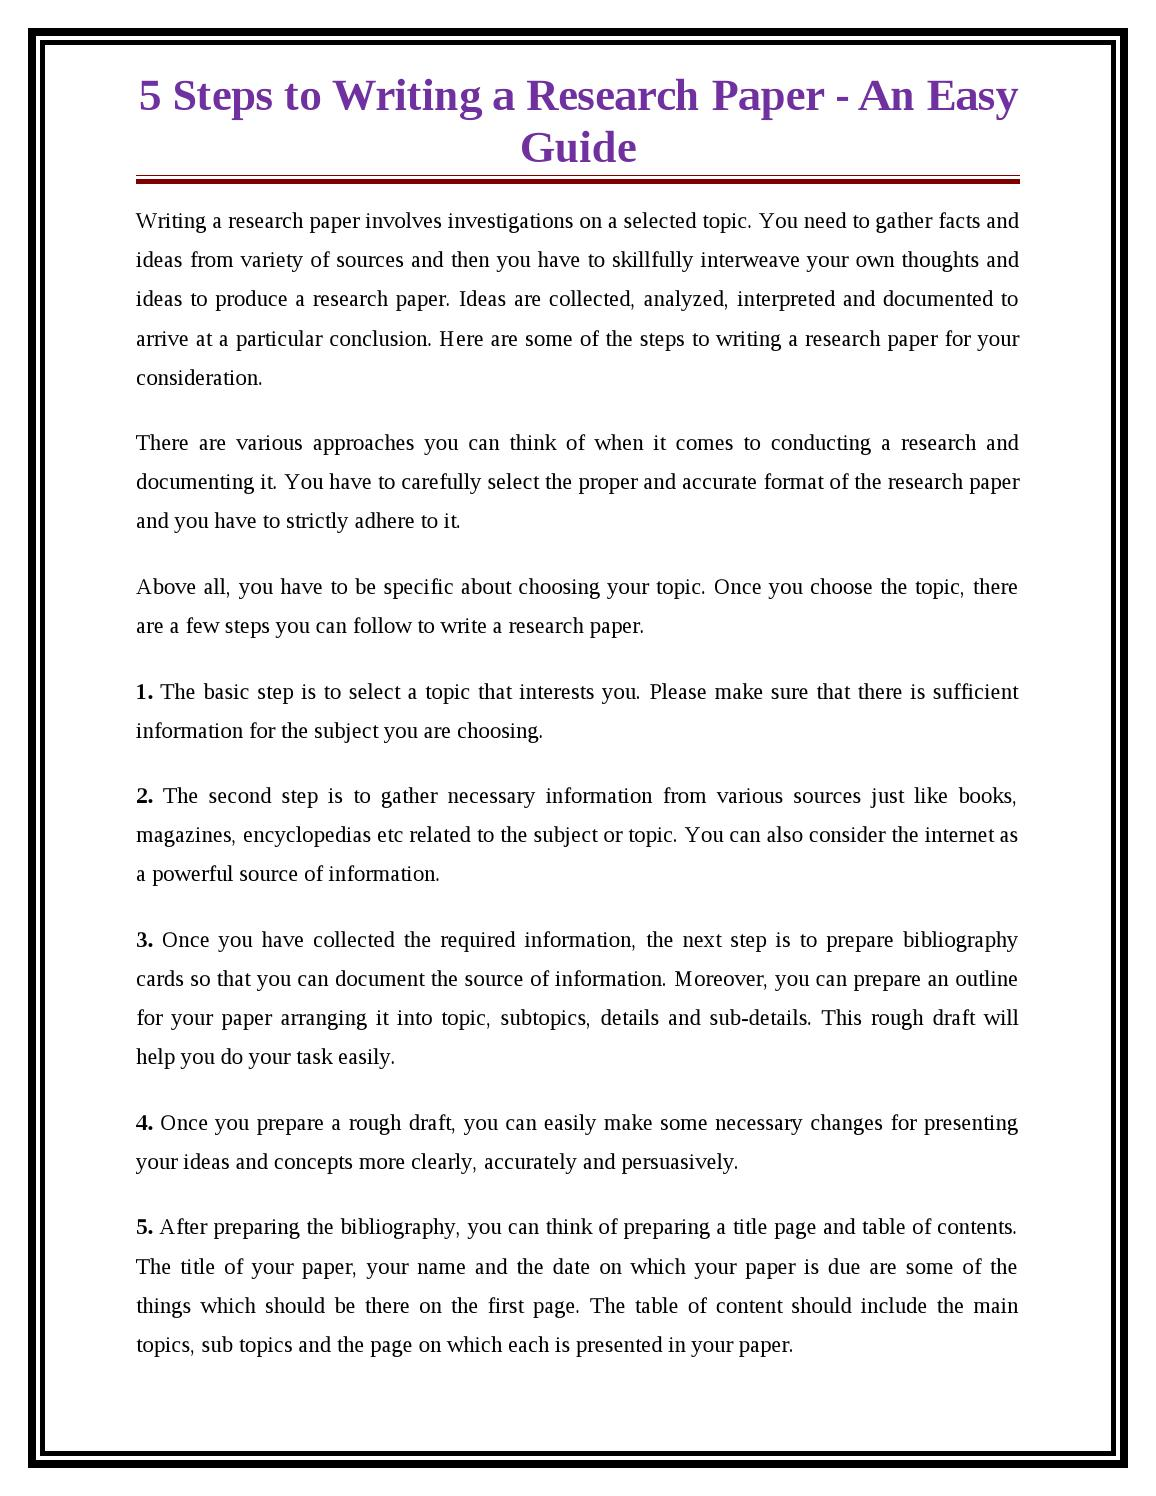 005 Research Paper Steps For Writing Page 1 Breathtaking A In Ppt 10 To Write Basic Easy Full